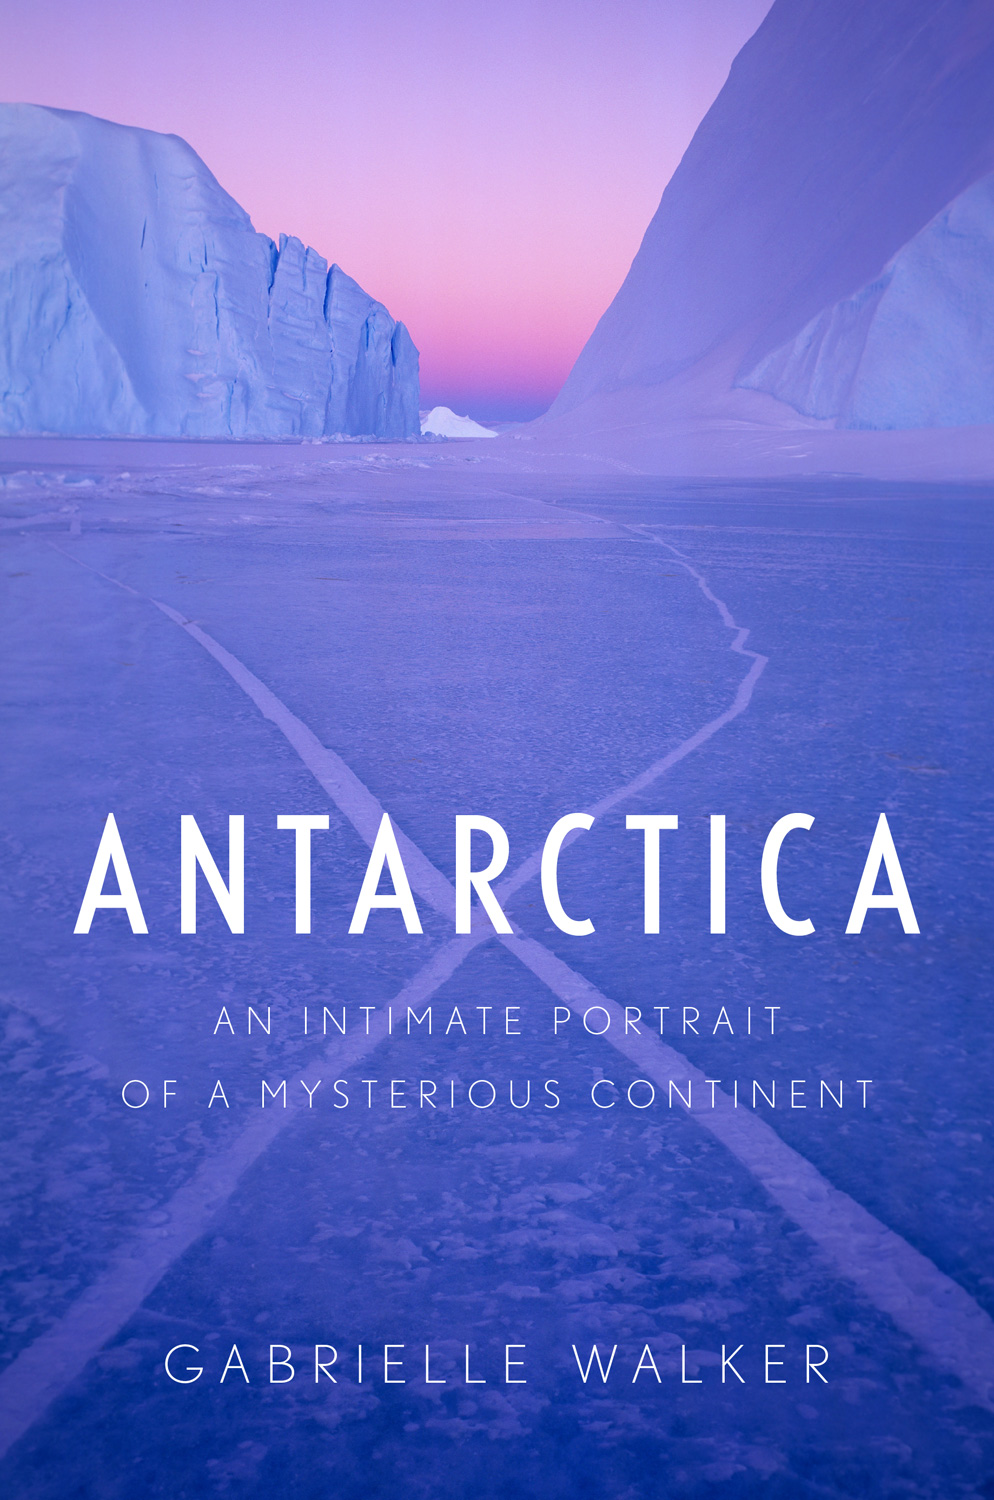 Antarctica: An Intimate Portrait of a Mysterious Continent by Gabrielle Walker